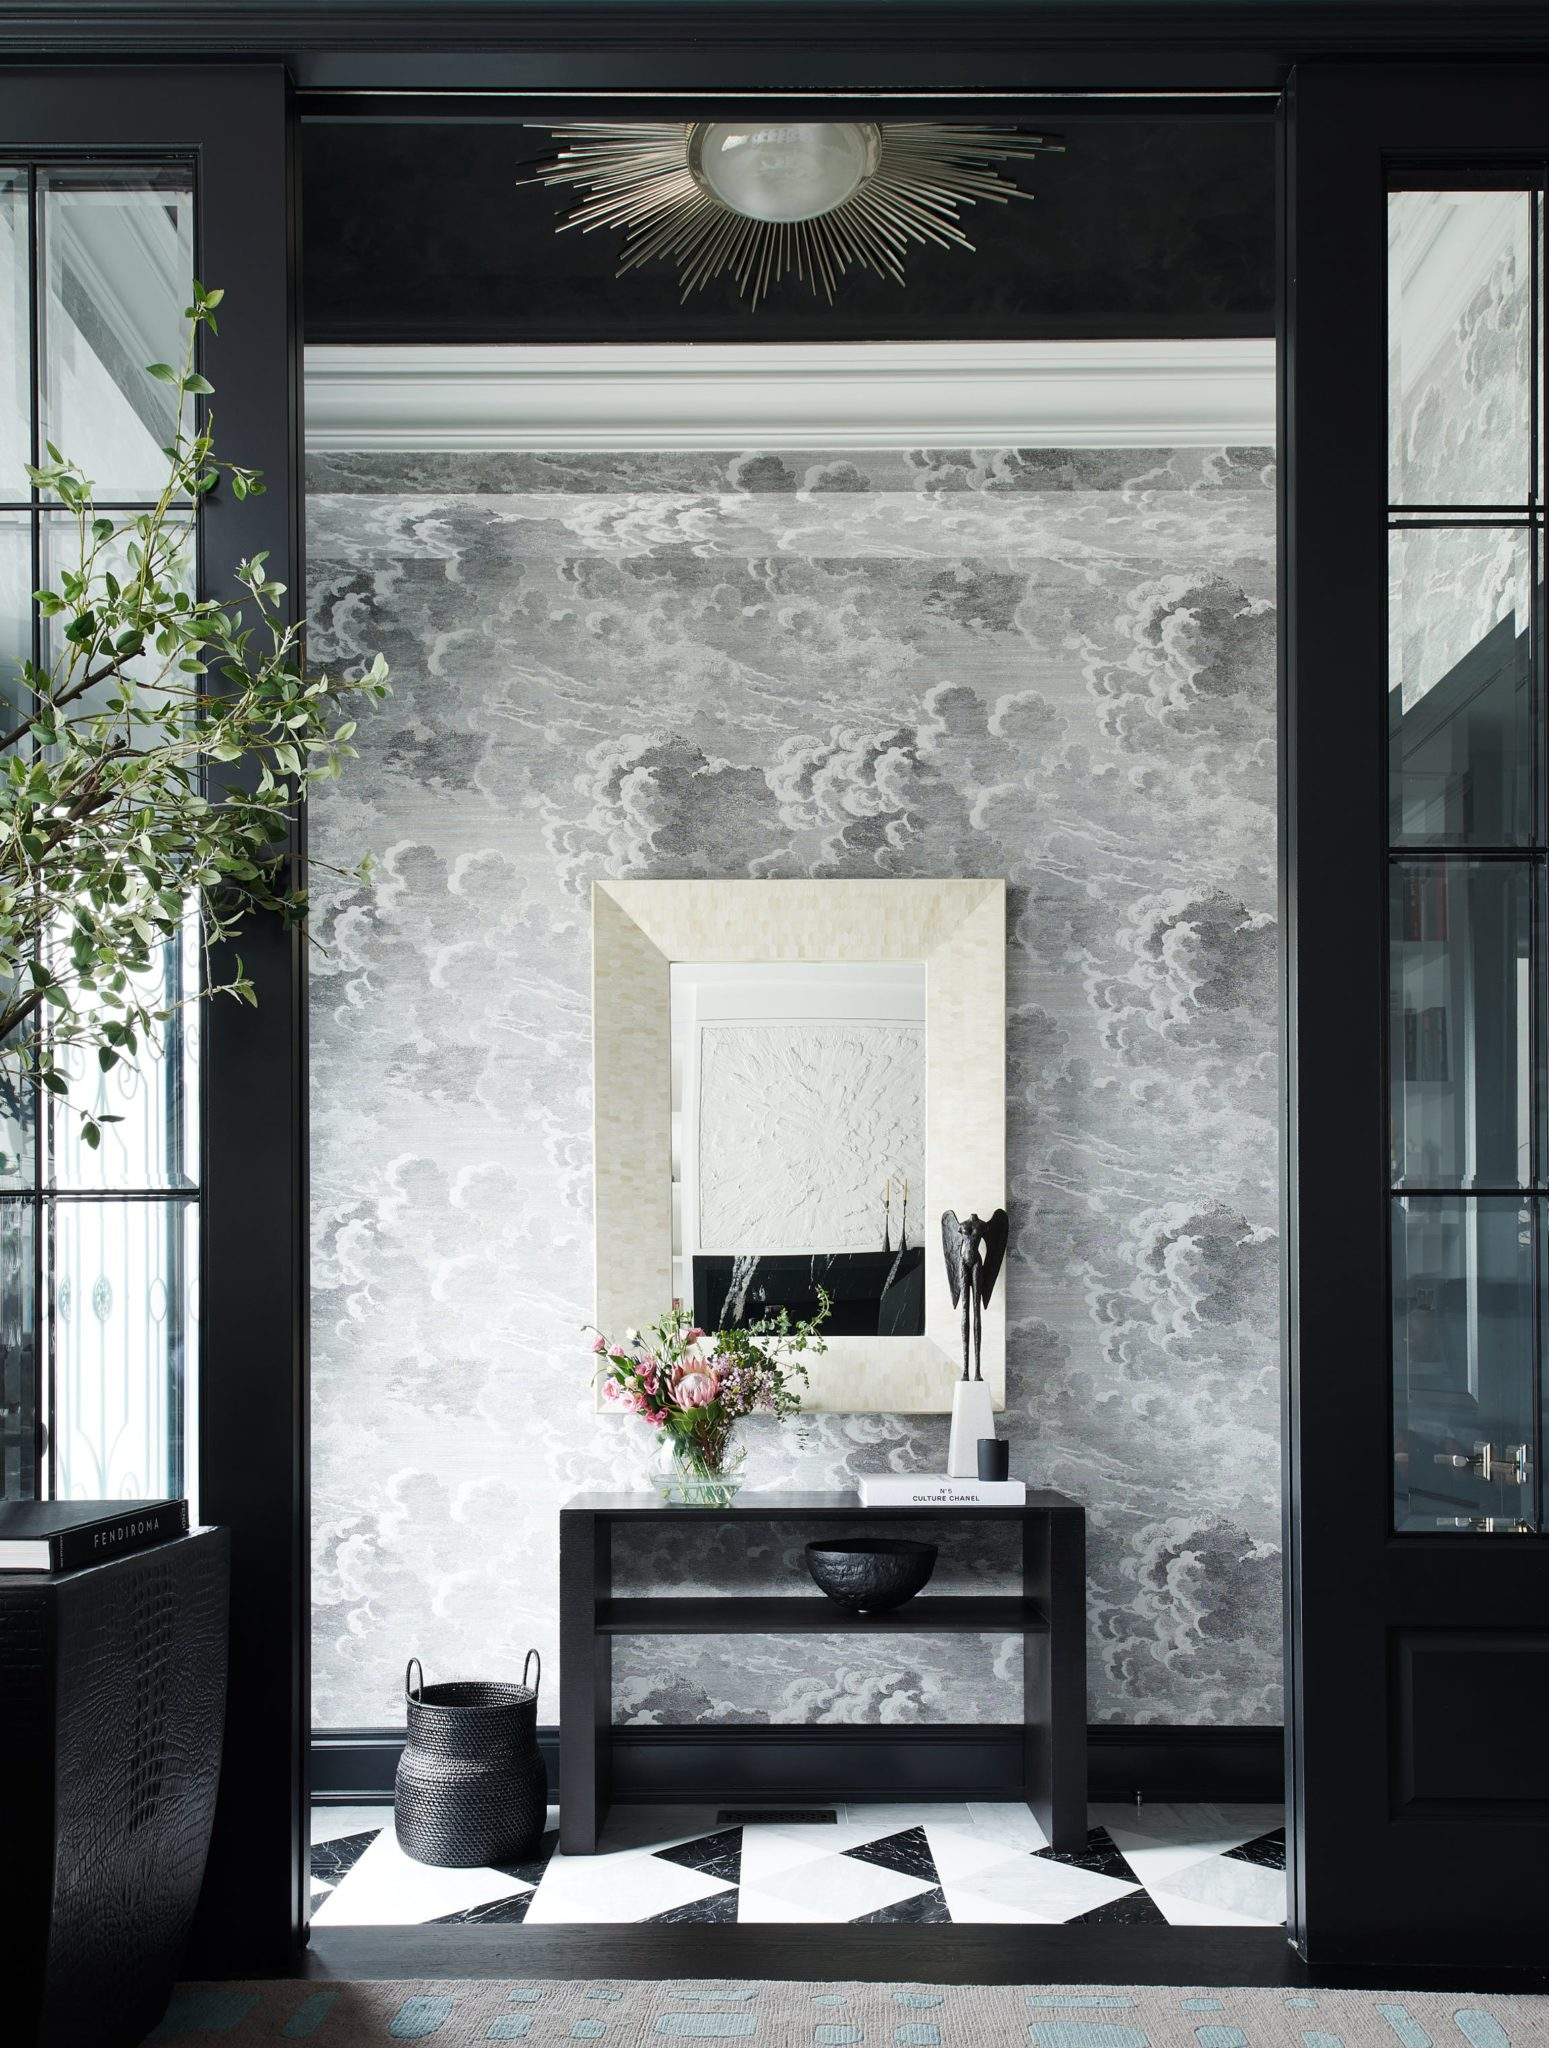 """5. Black Interiors   Add drama to any interior with jet black walls, flooring, or accents. """"Black interiors are an excellent way of creating a dramatic interior, buttheyalso can feel cozy and comfortingif done correctly,"""" saysSvetlana Tryaskina, the principal designer of Estee Design. """"I think designers are going to work with dark interiors in the next year because of the opportunity to create unique and memorable rooms and to showcase a designer's ability to work with textures and color combinations."""""""